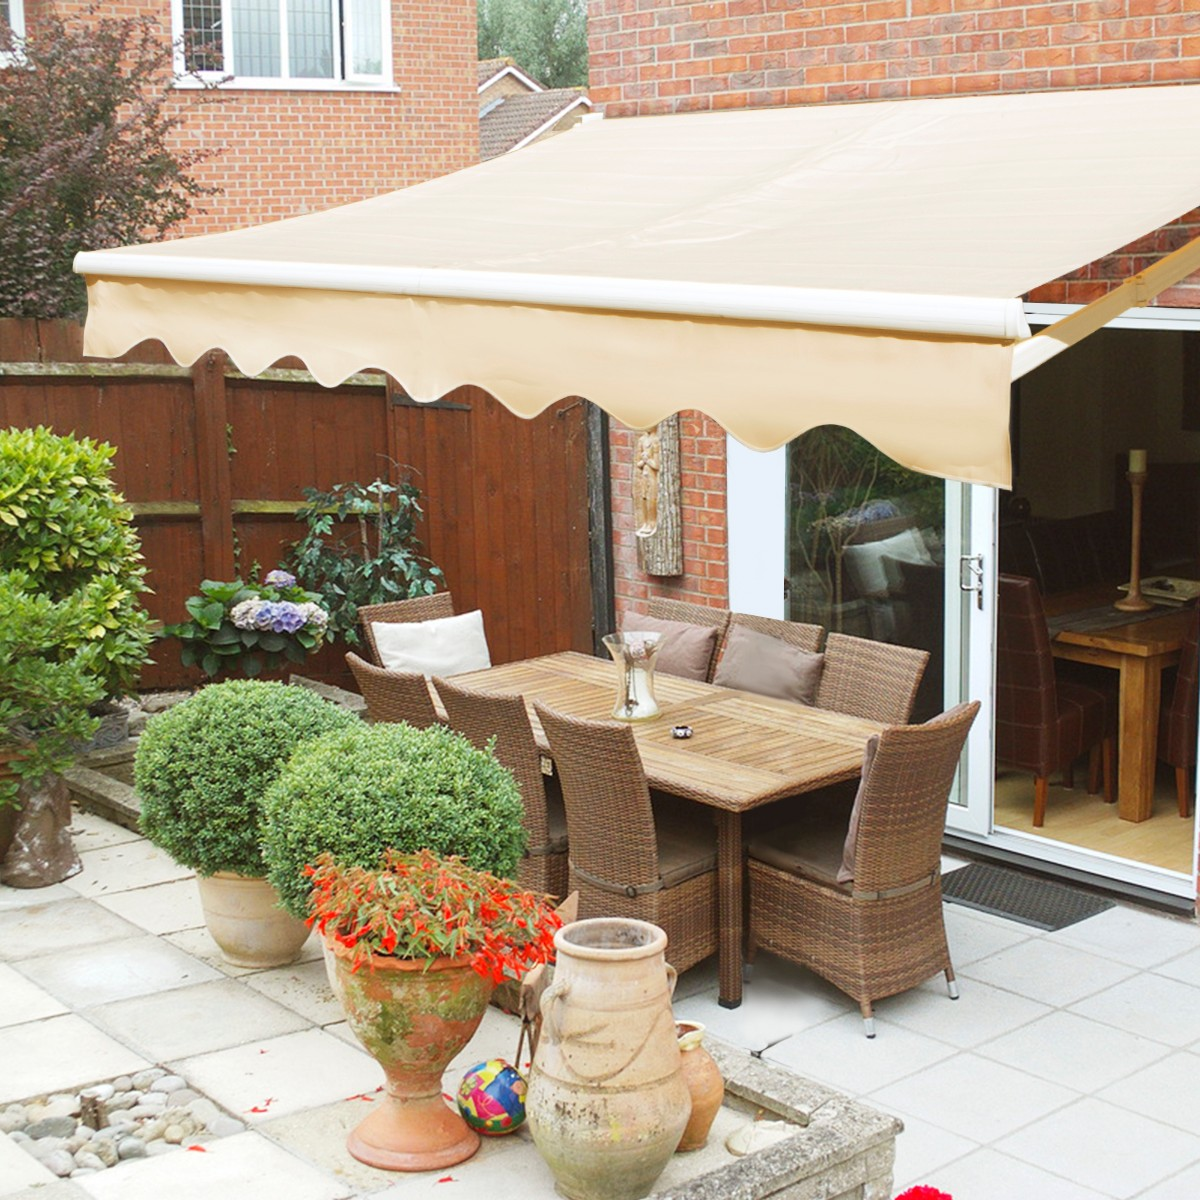 XtremepowerUS 12'x10' Retractable Patio Awning, Manual,Tan